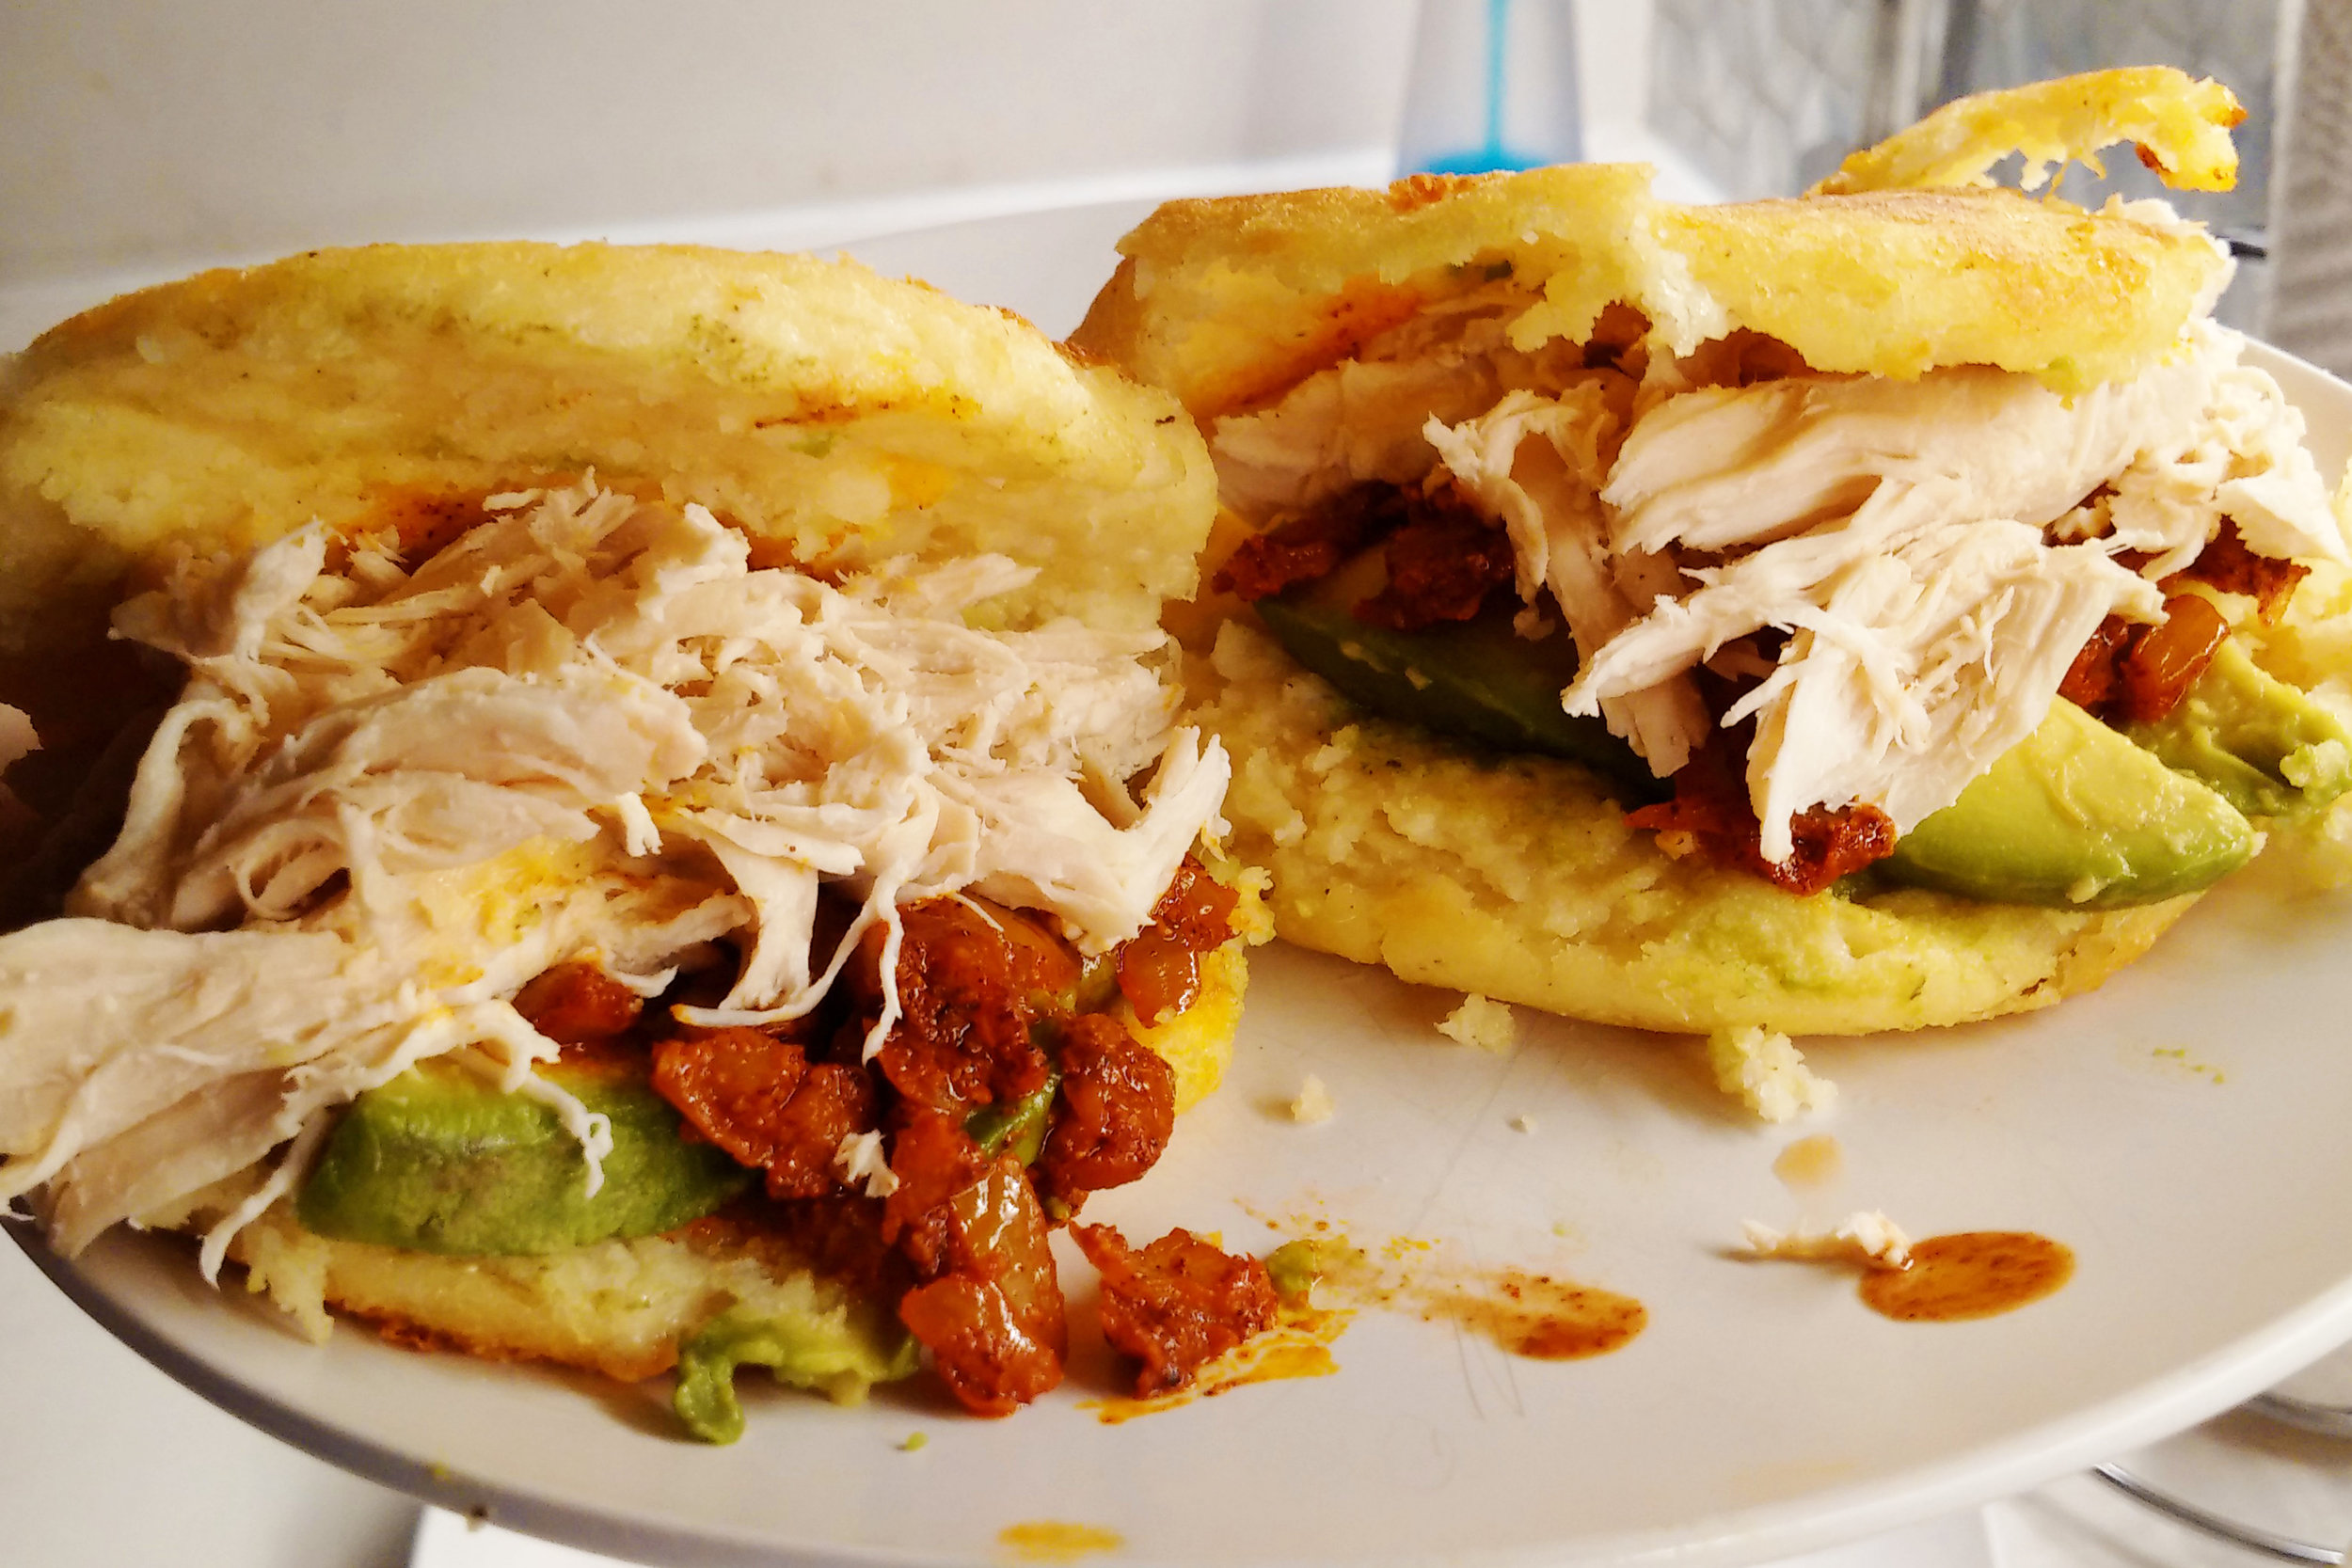 Homemade arepas from scratch!